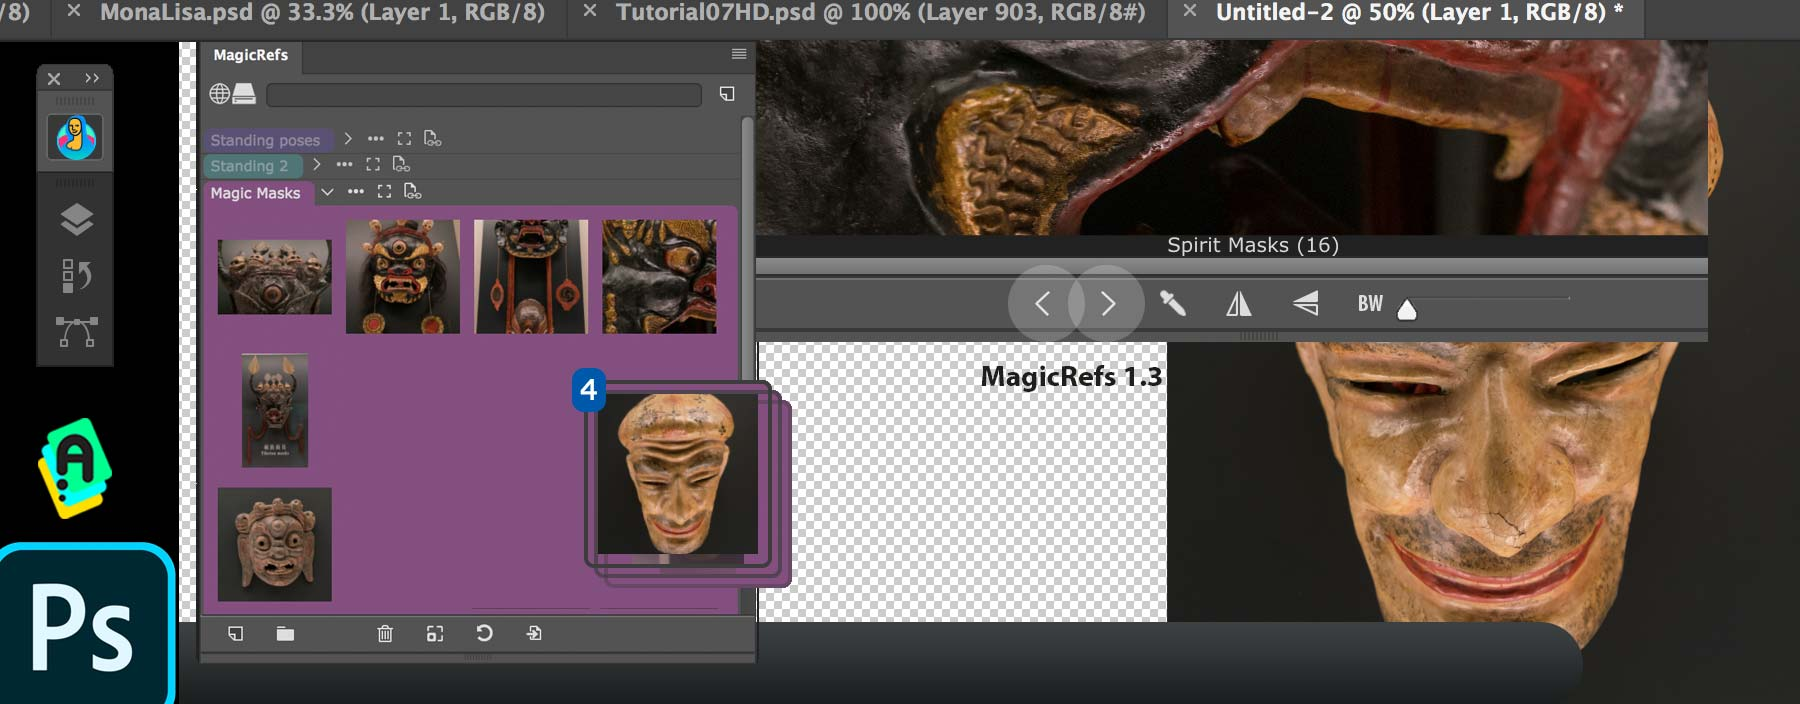 MagicRefs 1.3: improved reference image management in Adobe Photoshop